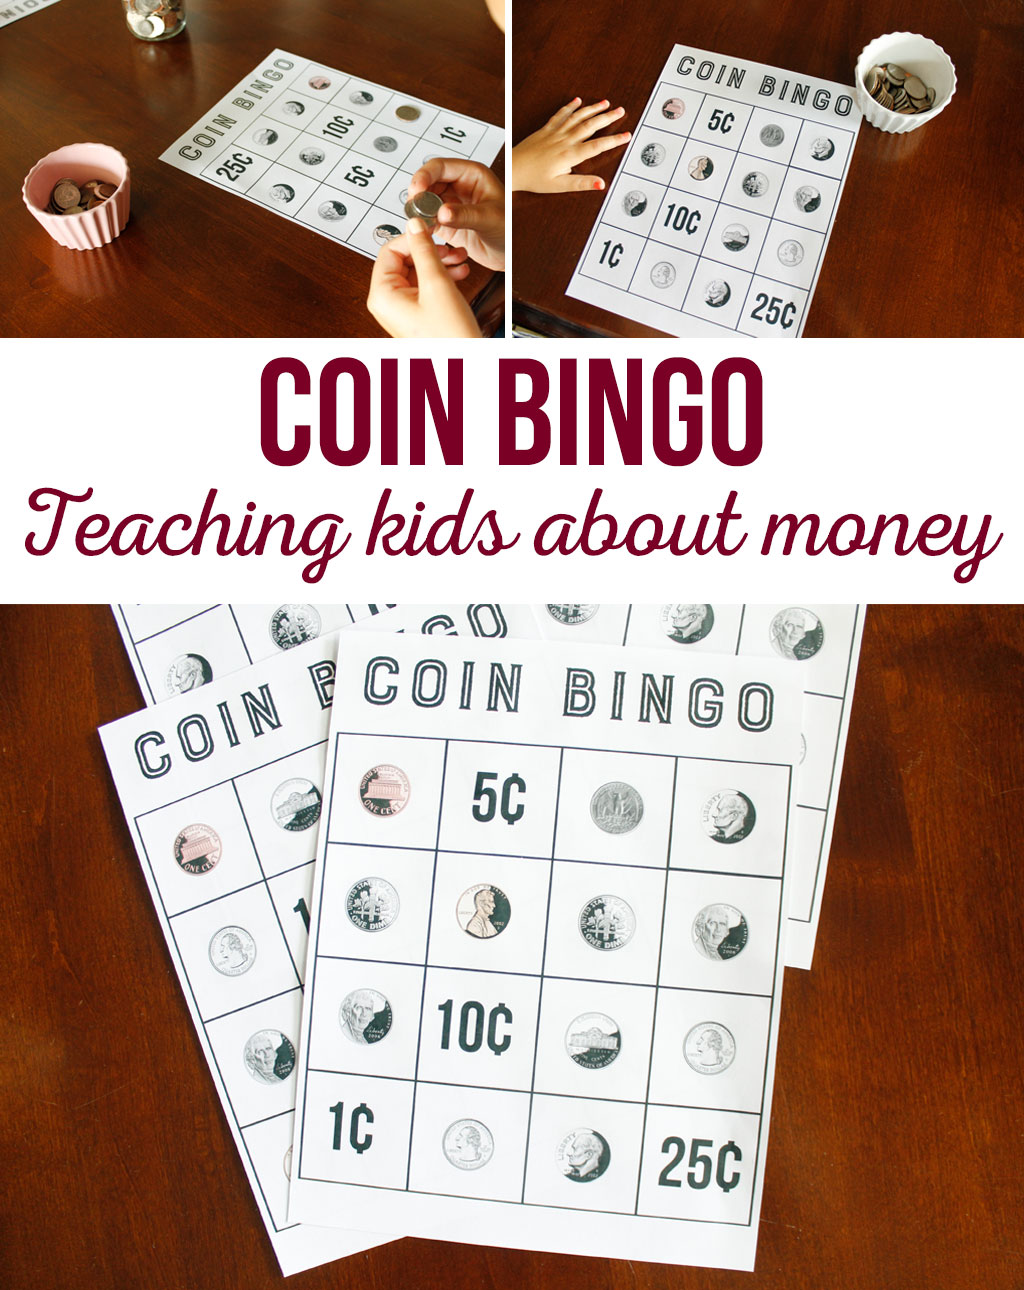 picture relating to Printable Money Games called Coin Bingo Free of charge Printable - The Composing Chicks